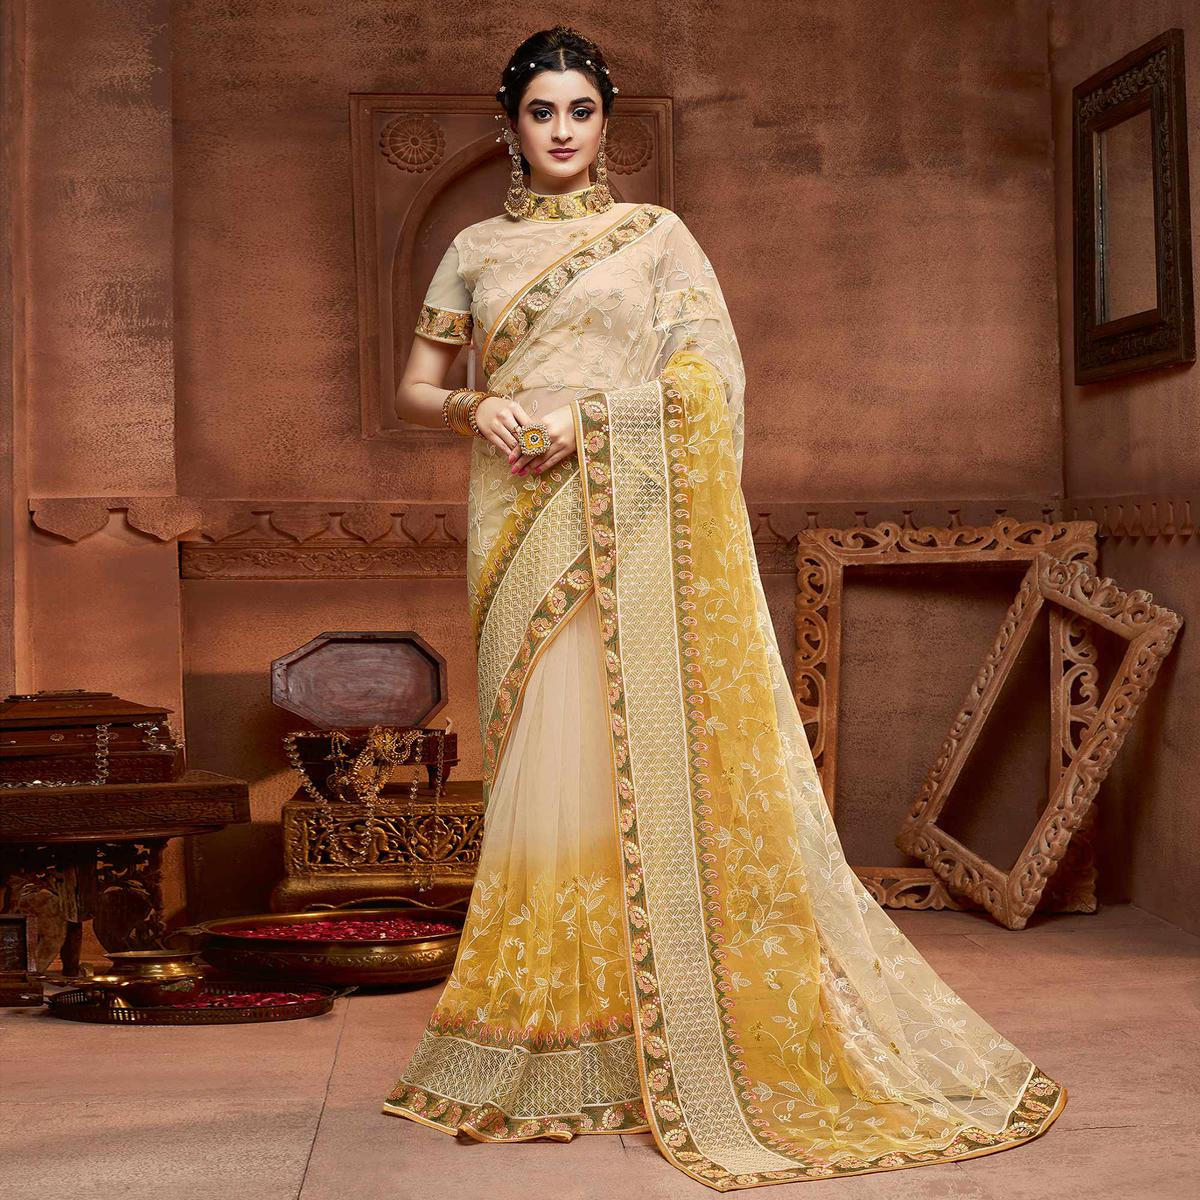 Capricious Beige & Mustard Coloured Partywear Embroidered Soft Net Saree